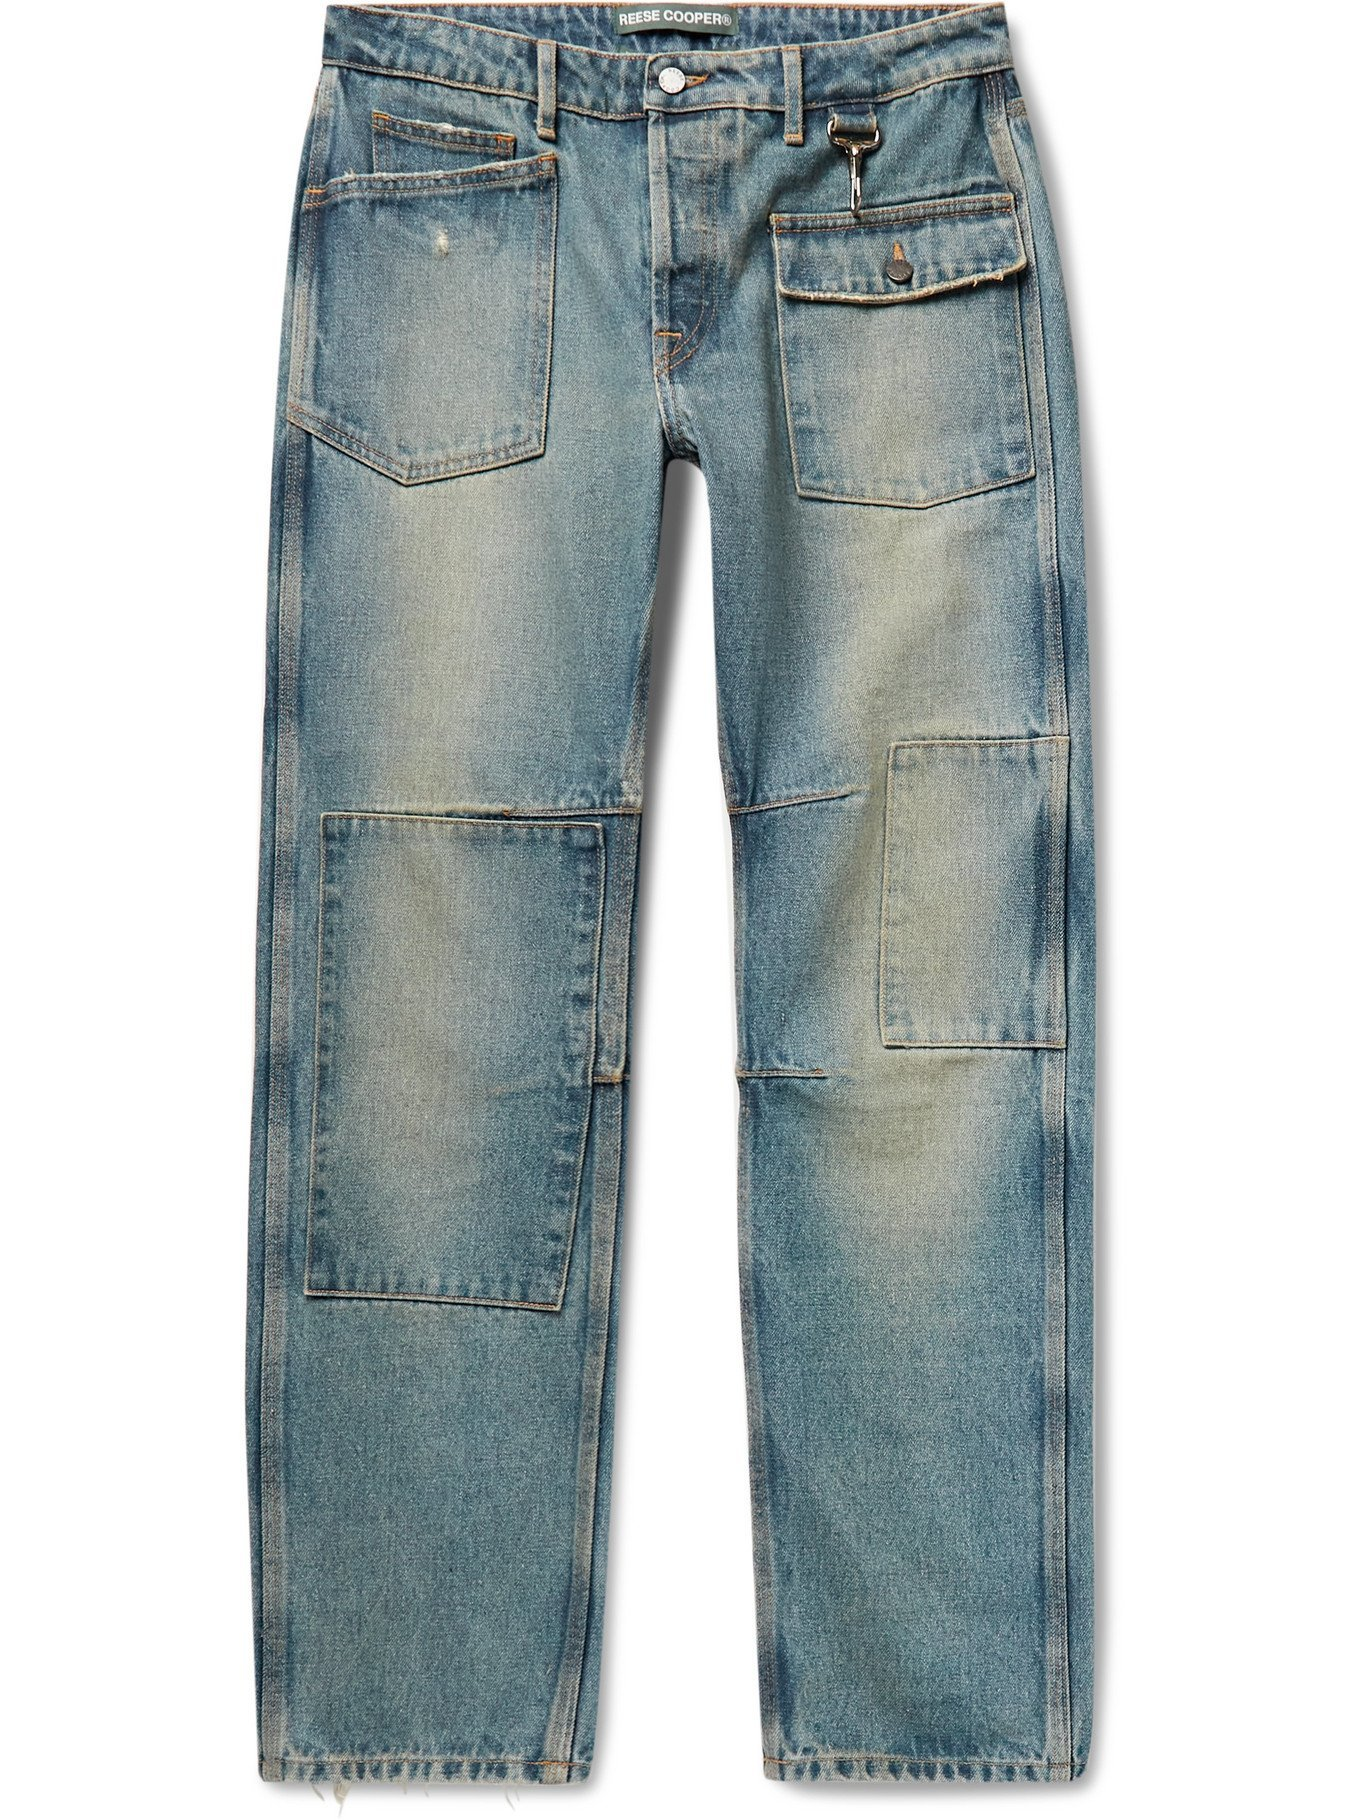 Photo: REESE COOPER® - Patchwork Distressed Denim Jeans - Blue - UK/US 30